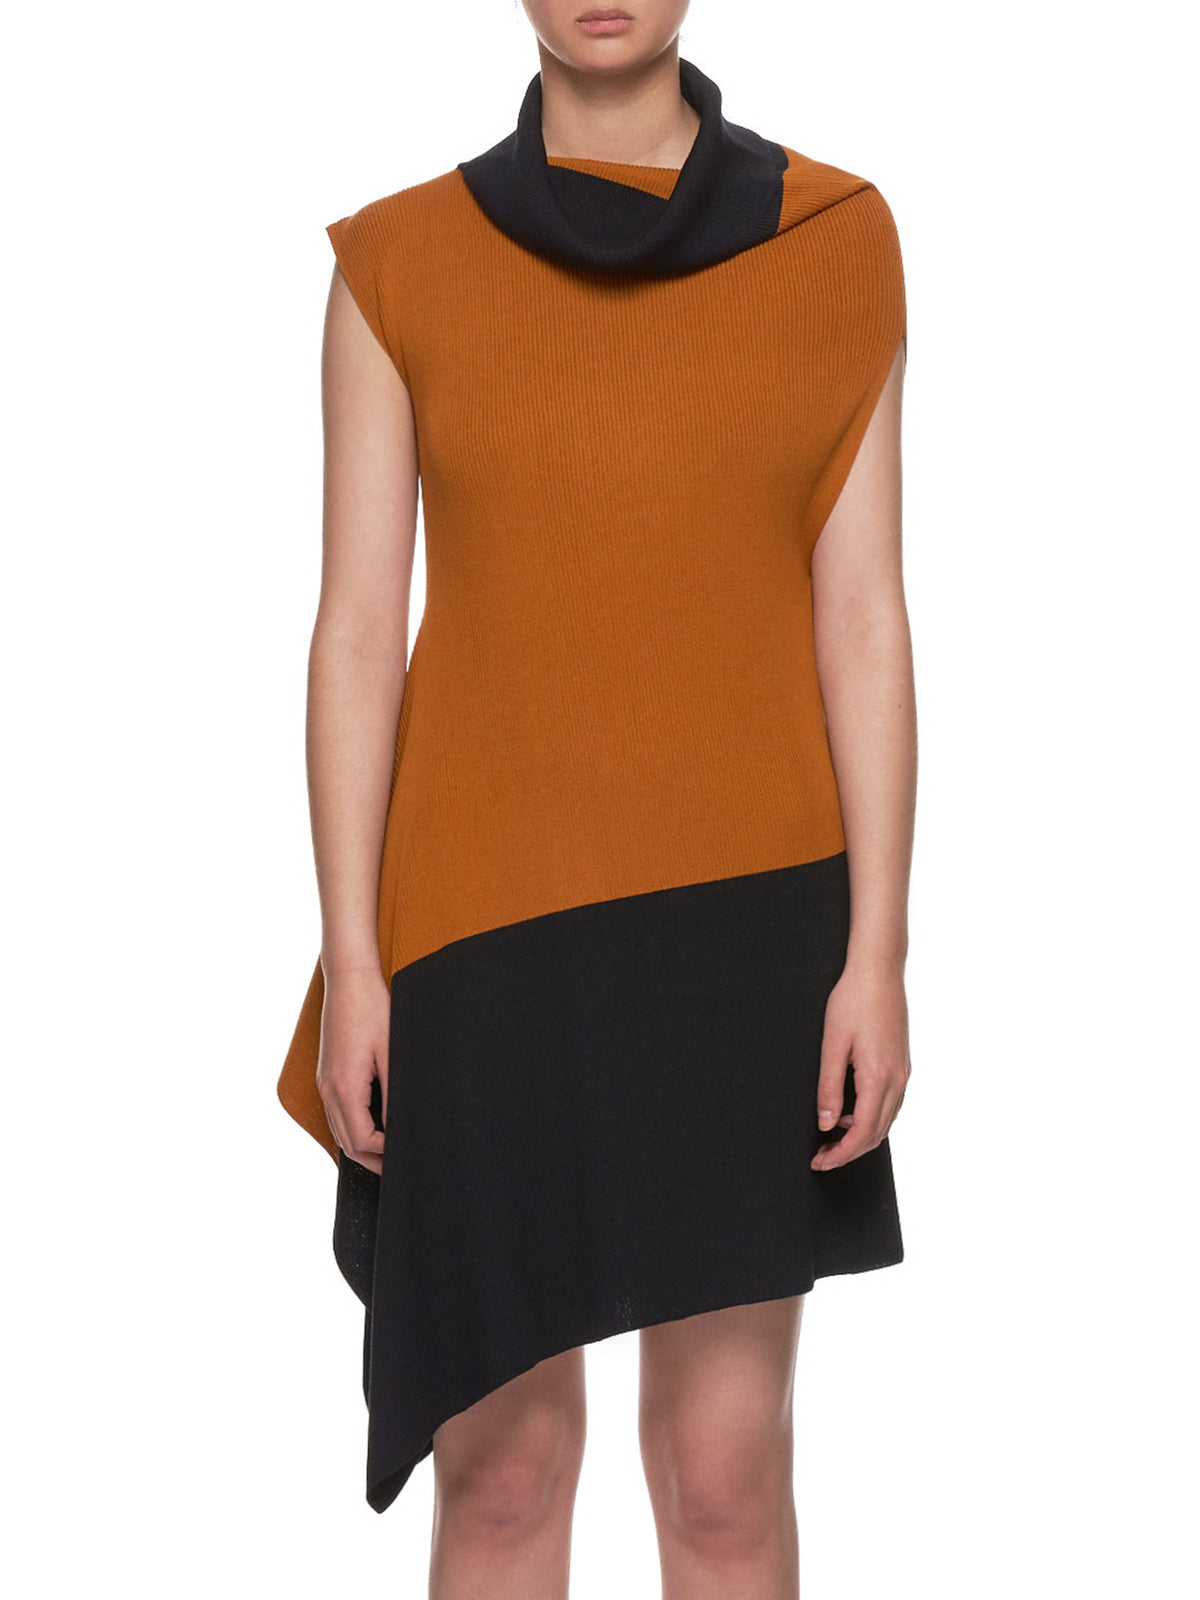 Flat Rib Knit Dress (IL96KT732-ORANGE-BLACK)